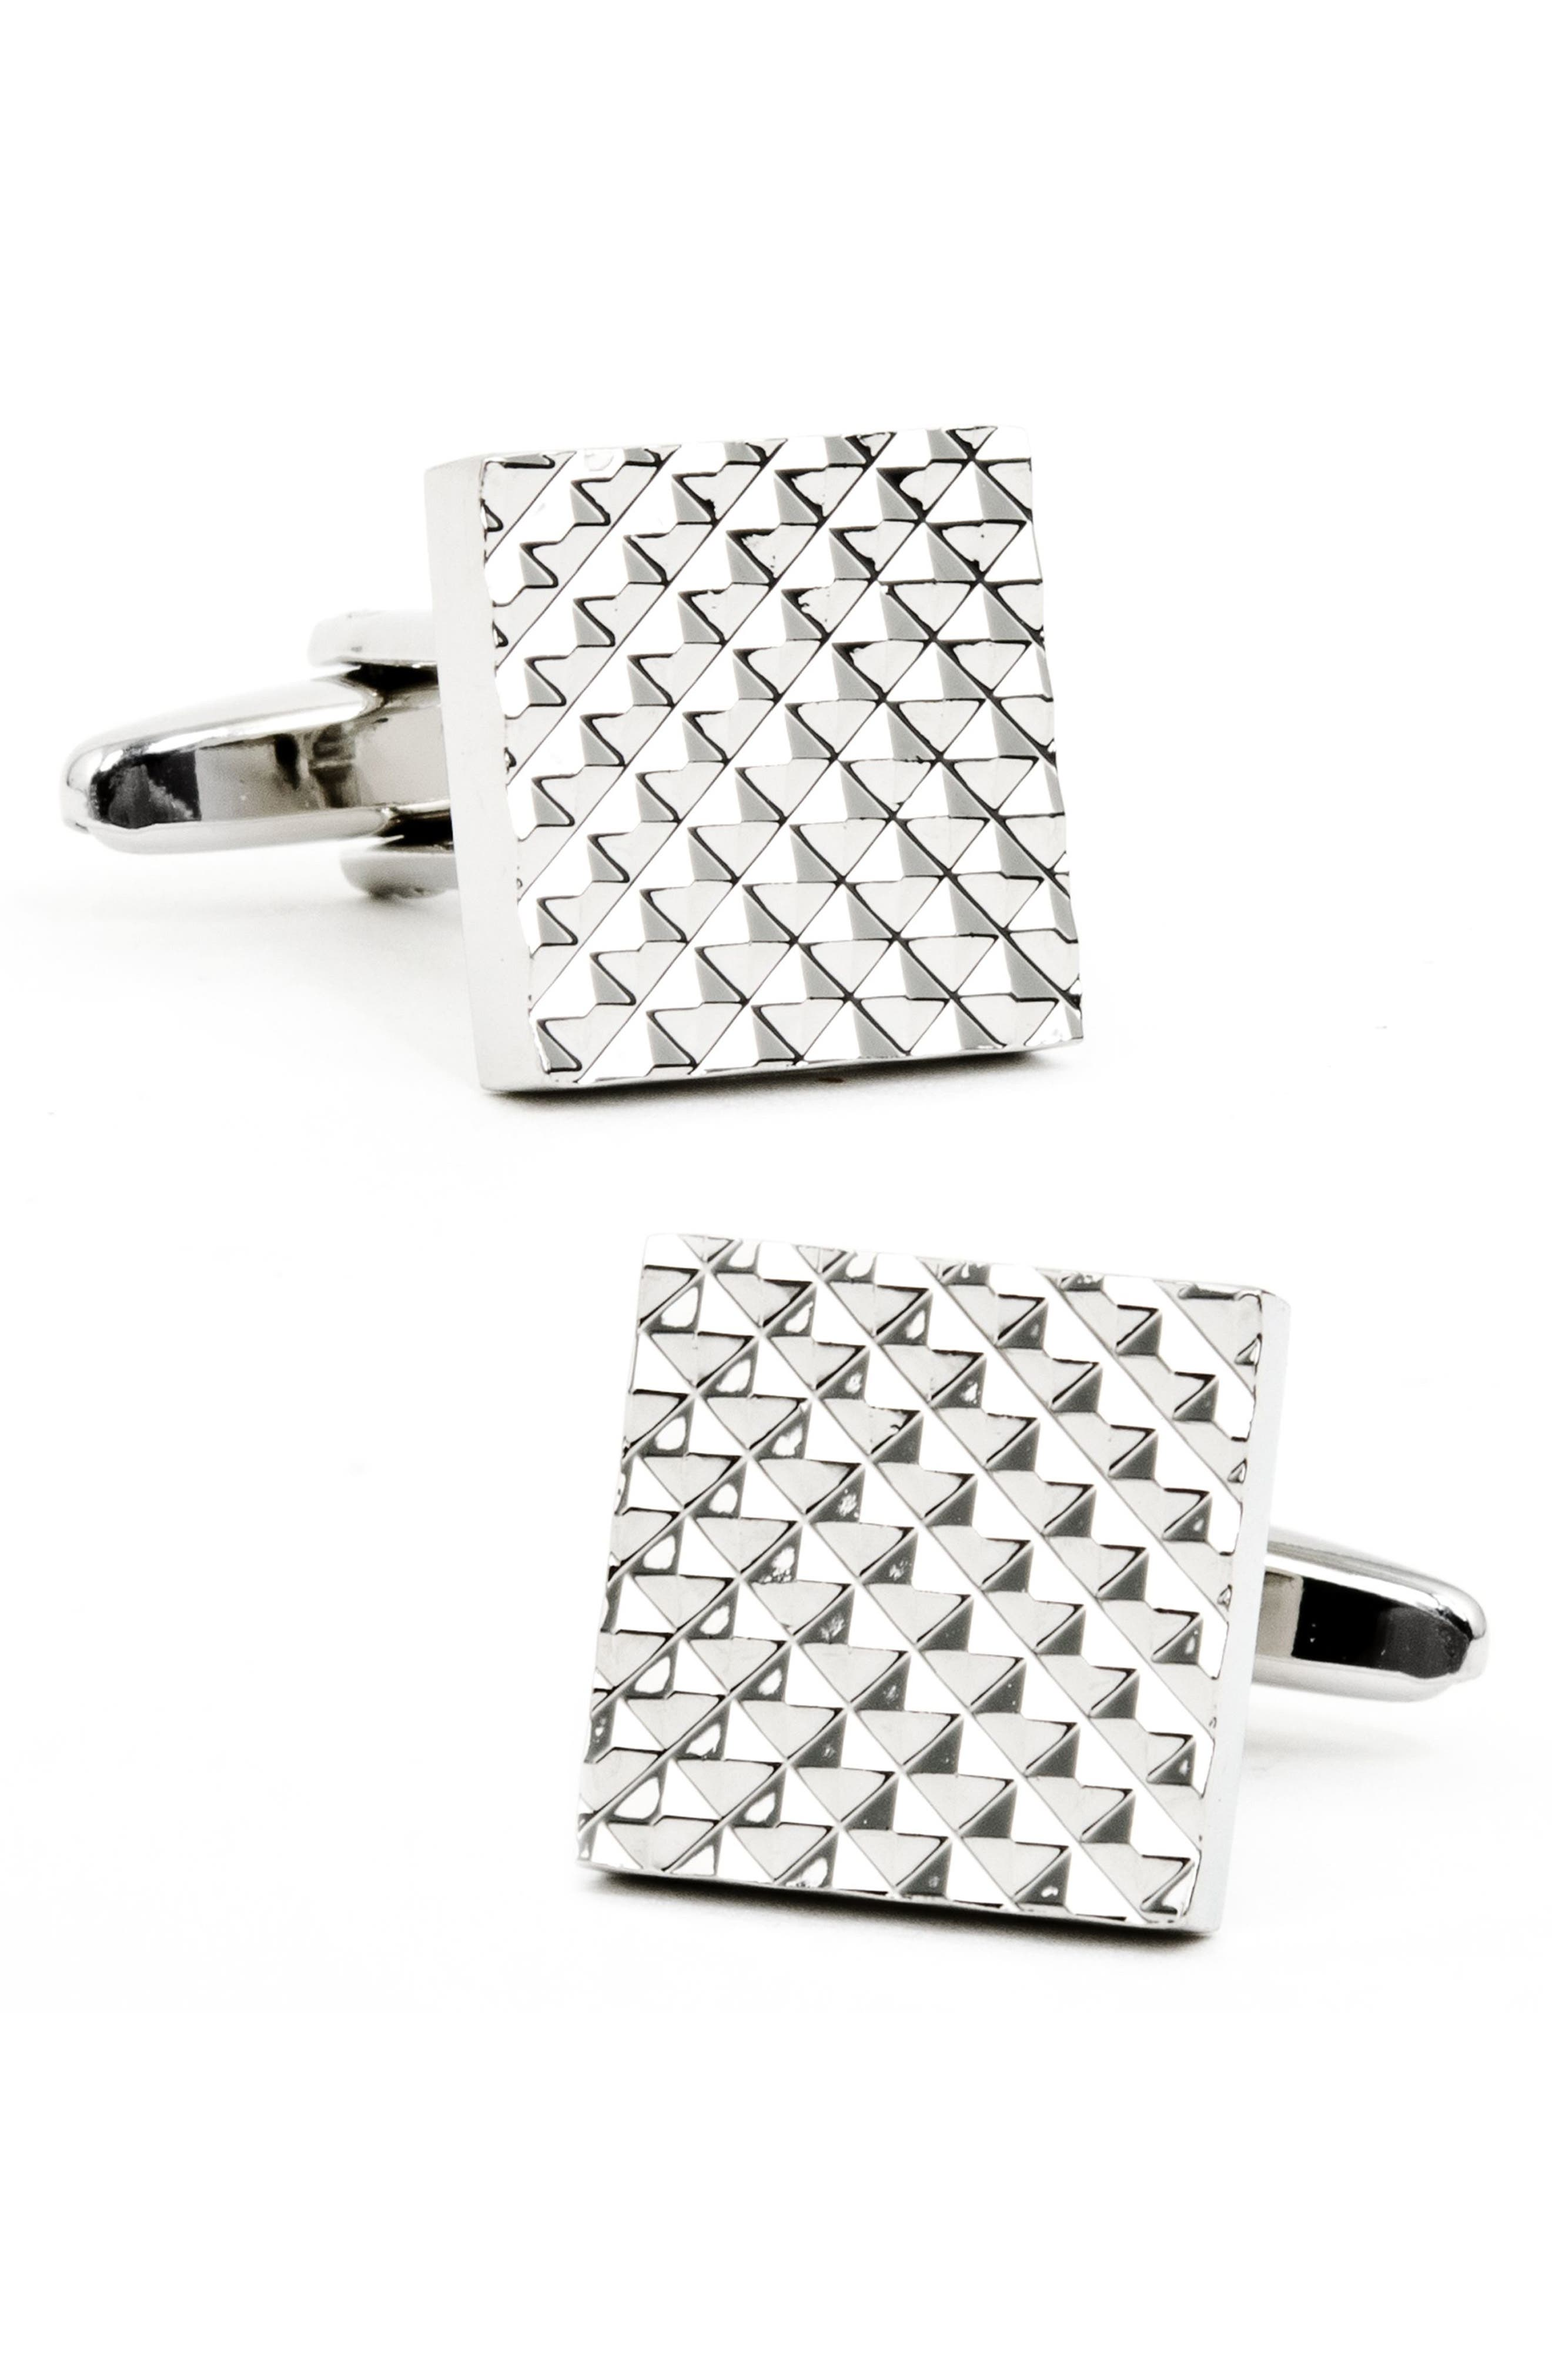 Apex Square Cuff Links,                             Main thumbnail 1, color,                             SILVER